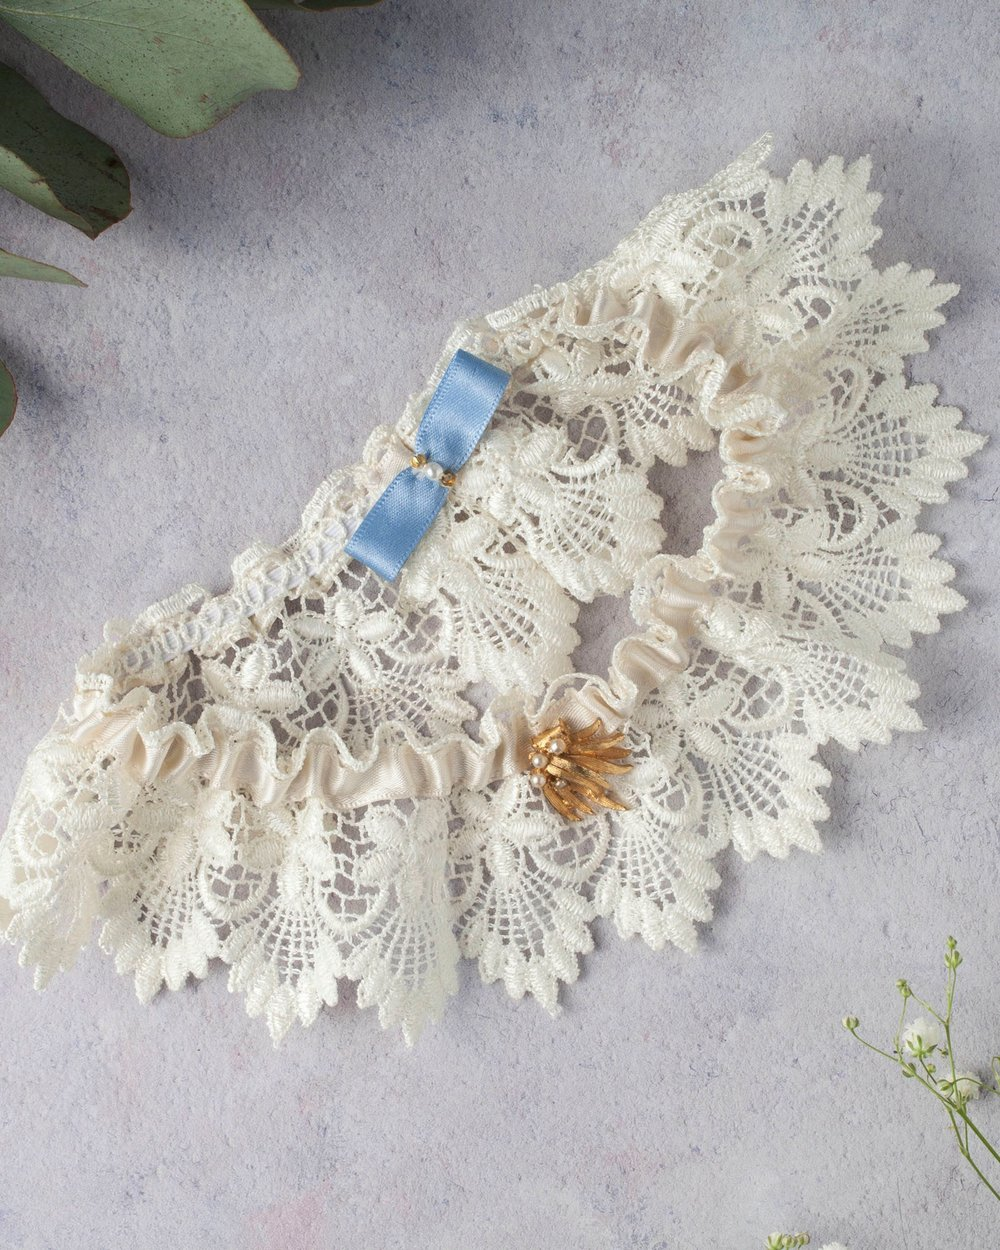 Add more lace! - And something blue! With the Persephone garter by Silversixpence in her shoe.